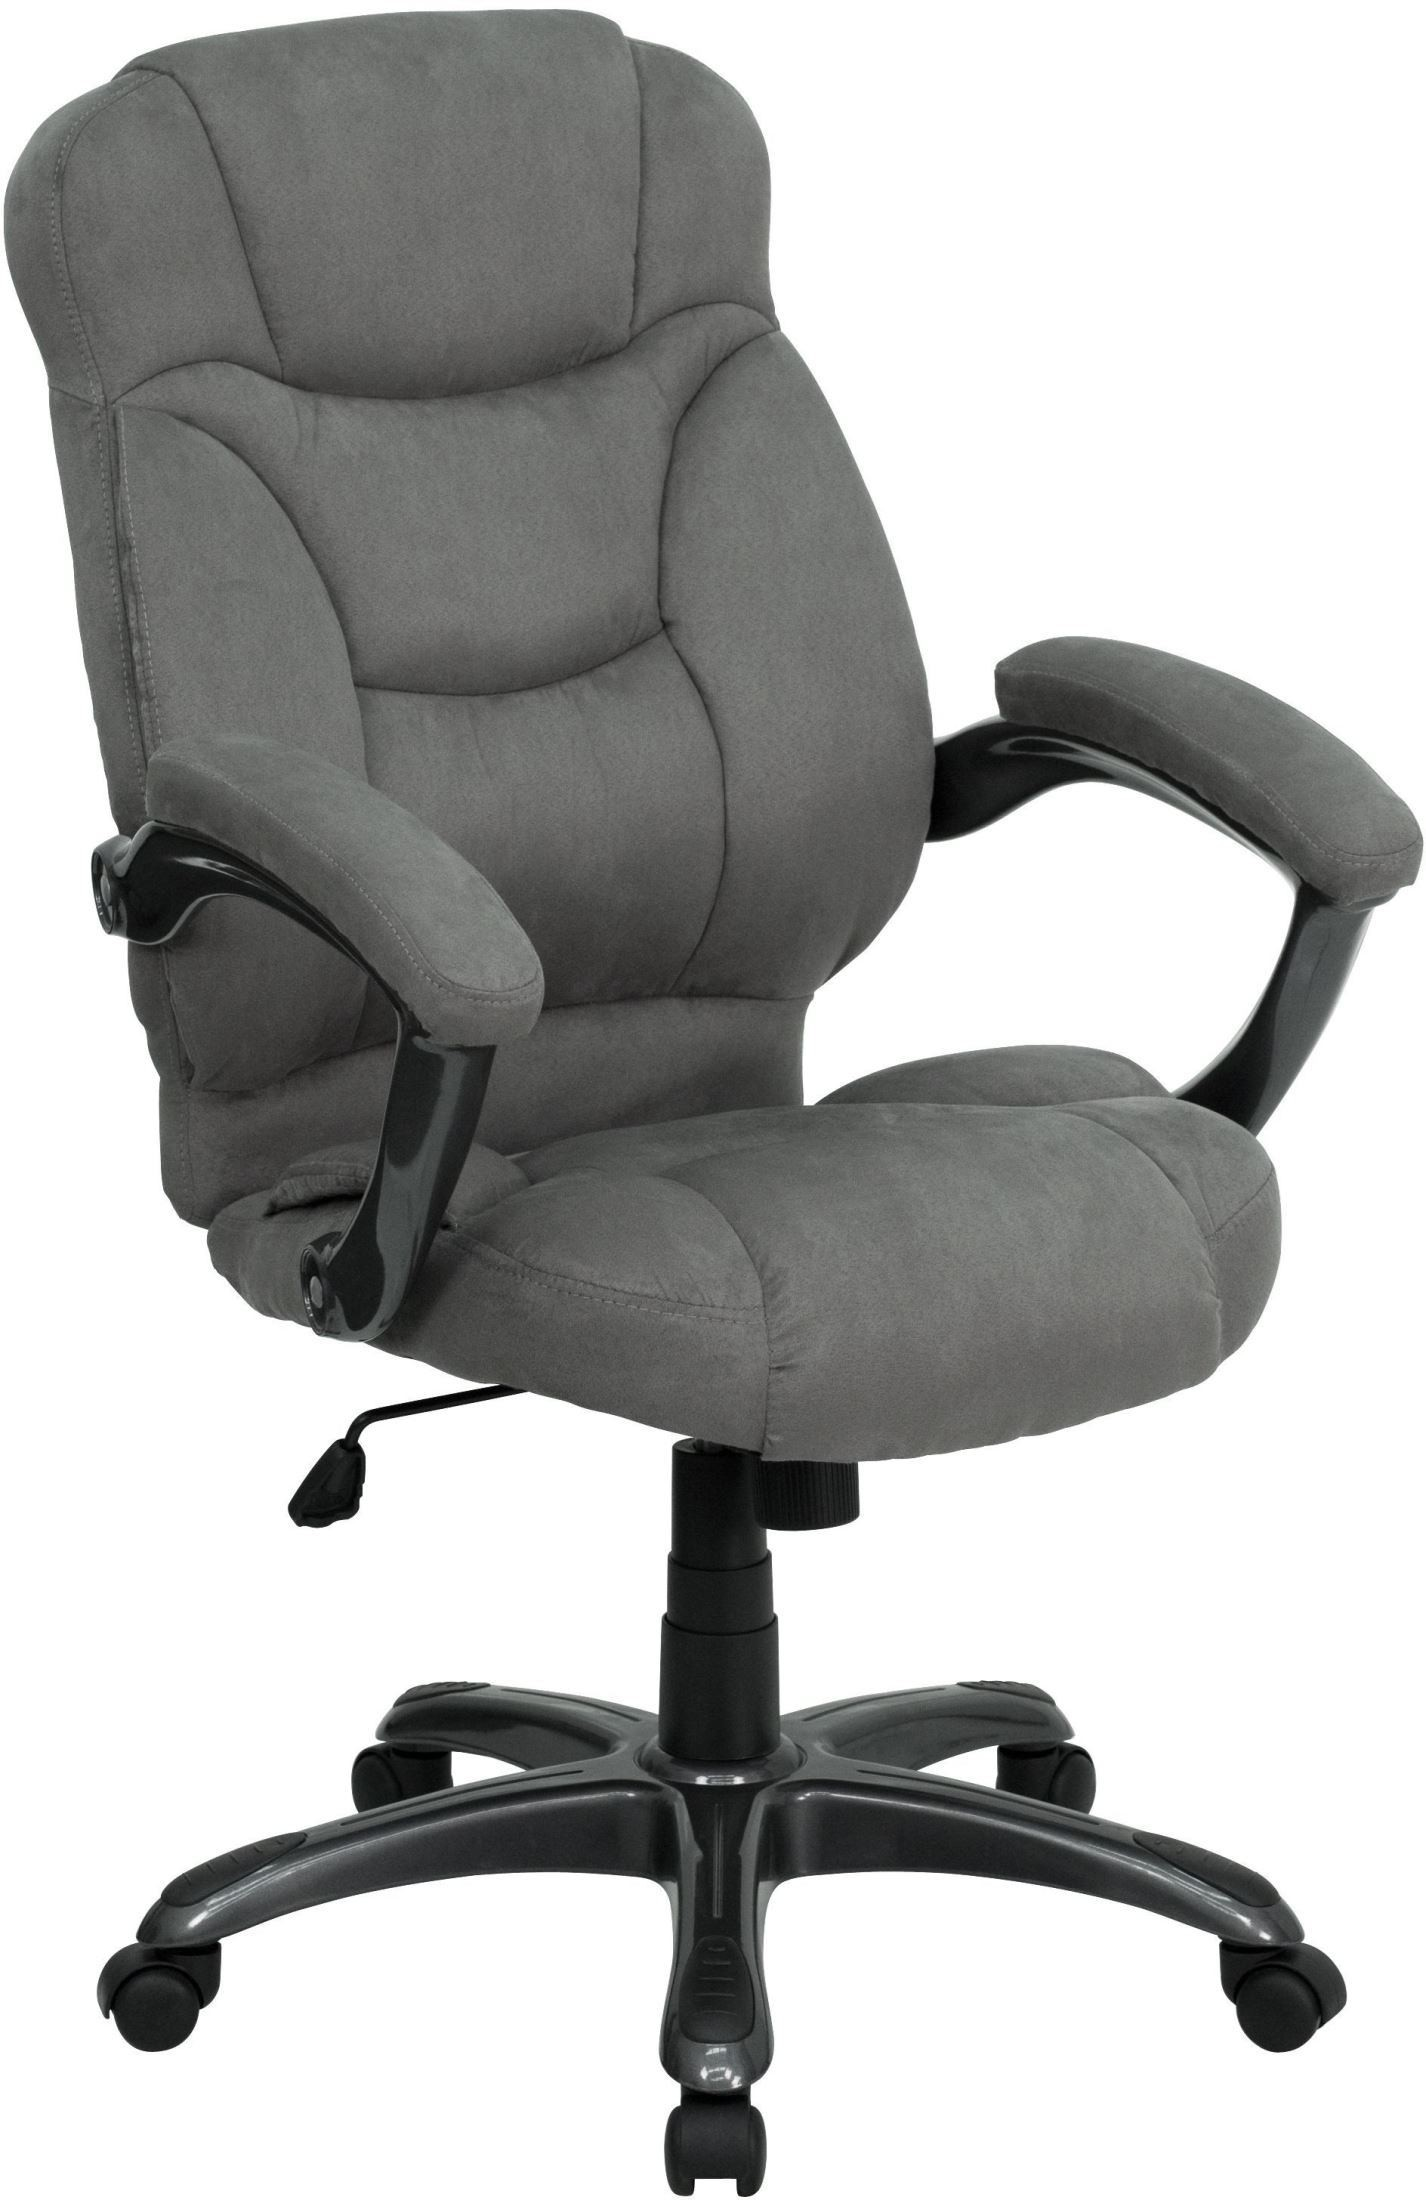 home high back gray upholstered contemporary office chair min order